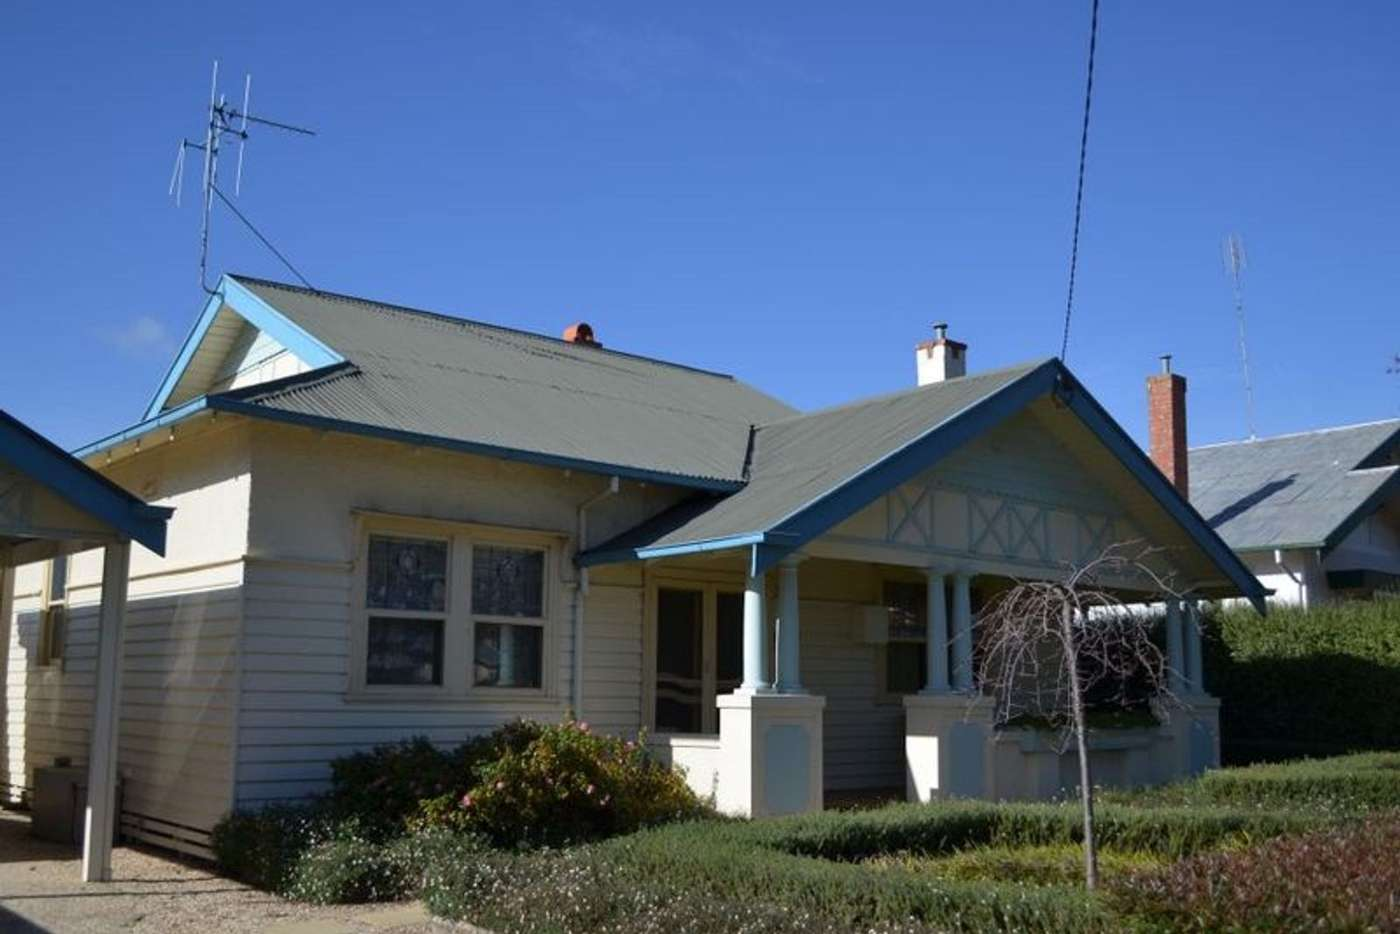 Main view of Homely house listing, 57 Neale Street, Bendigo VIC 3550